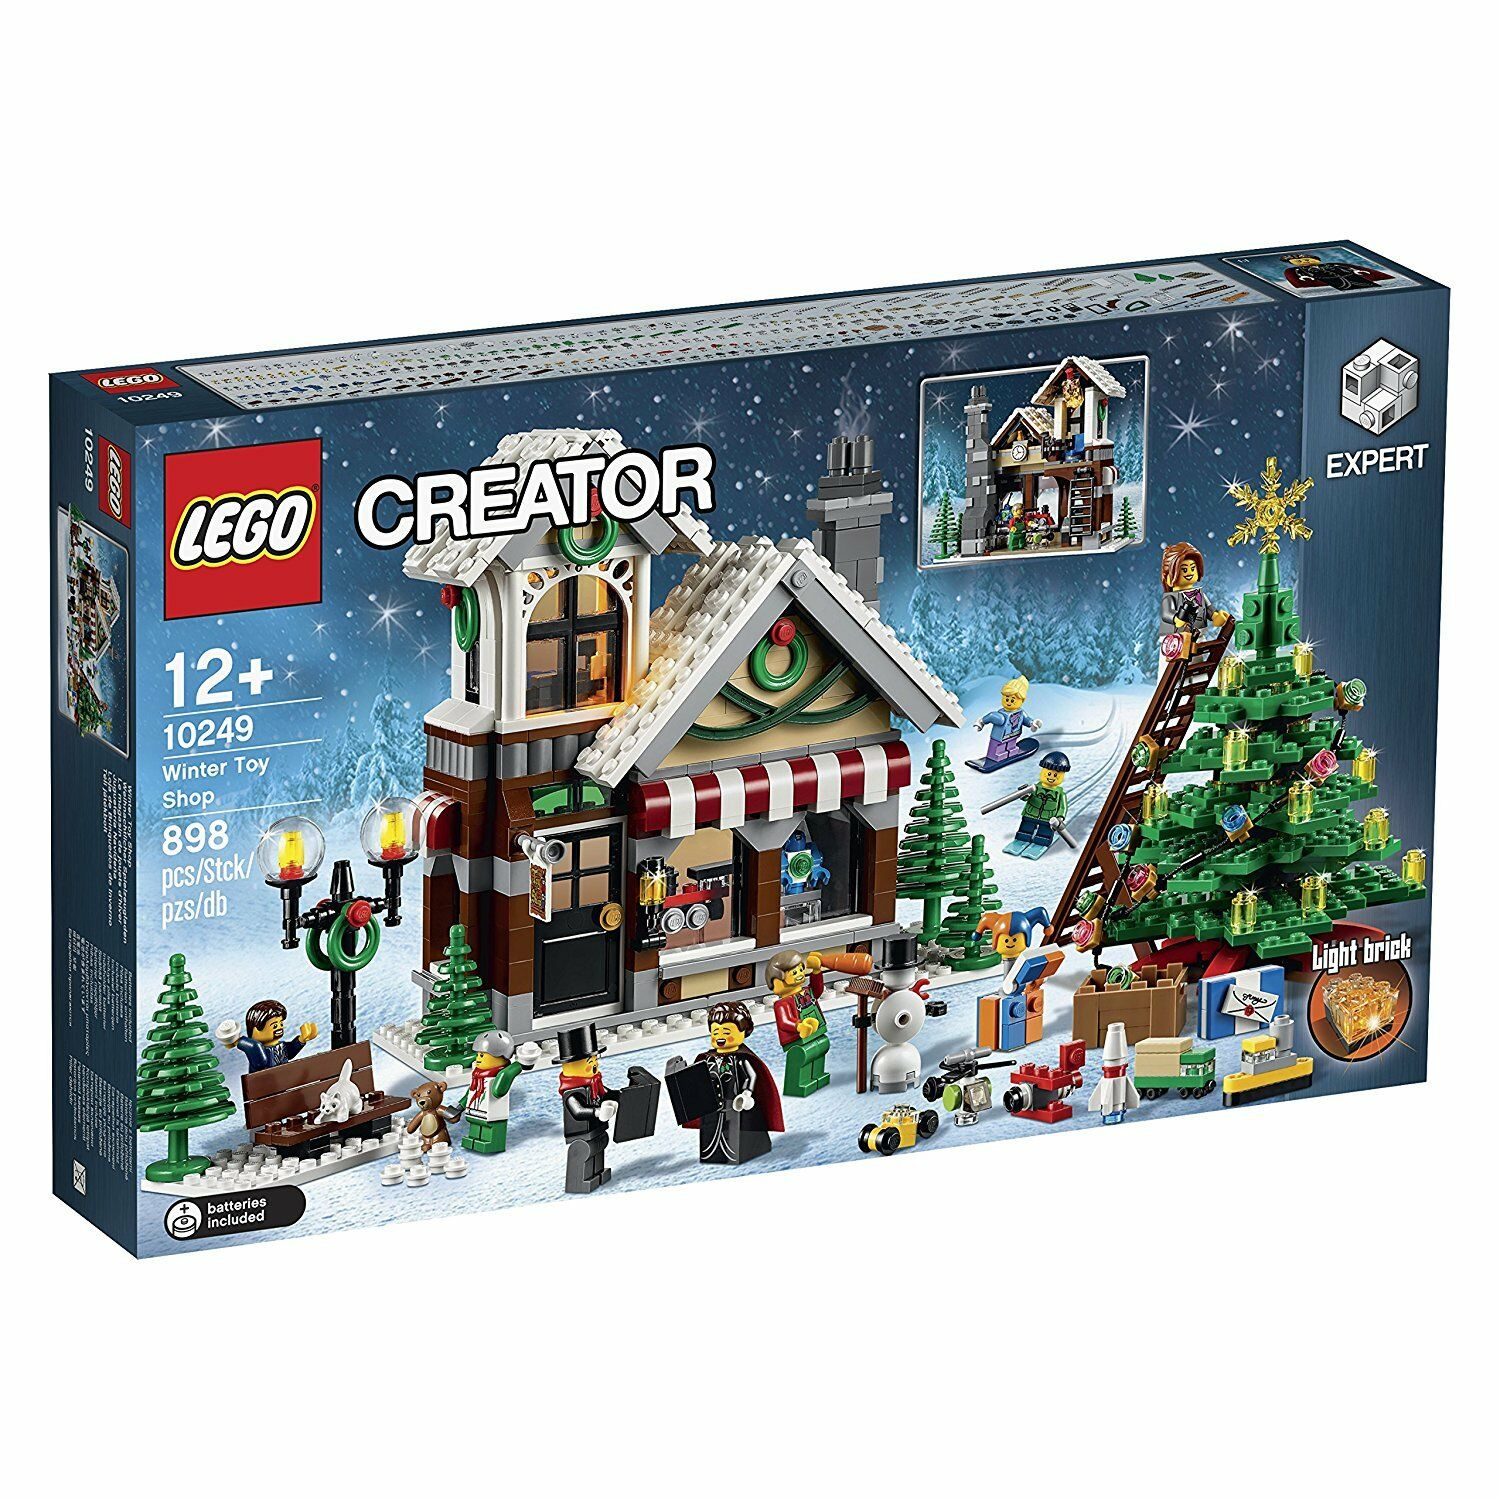 Lego Creator Winter Toy Shop 10249 BRAND NEW SEALED BOX